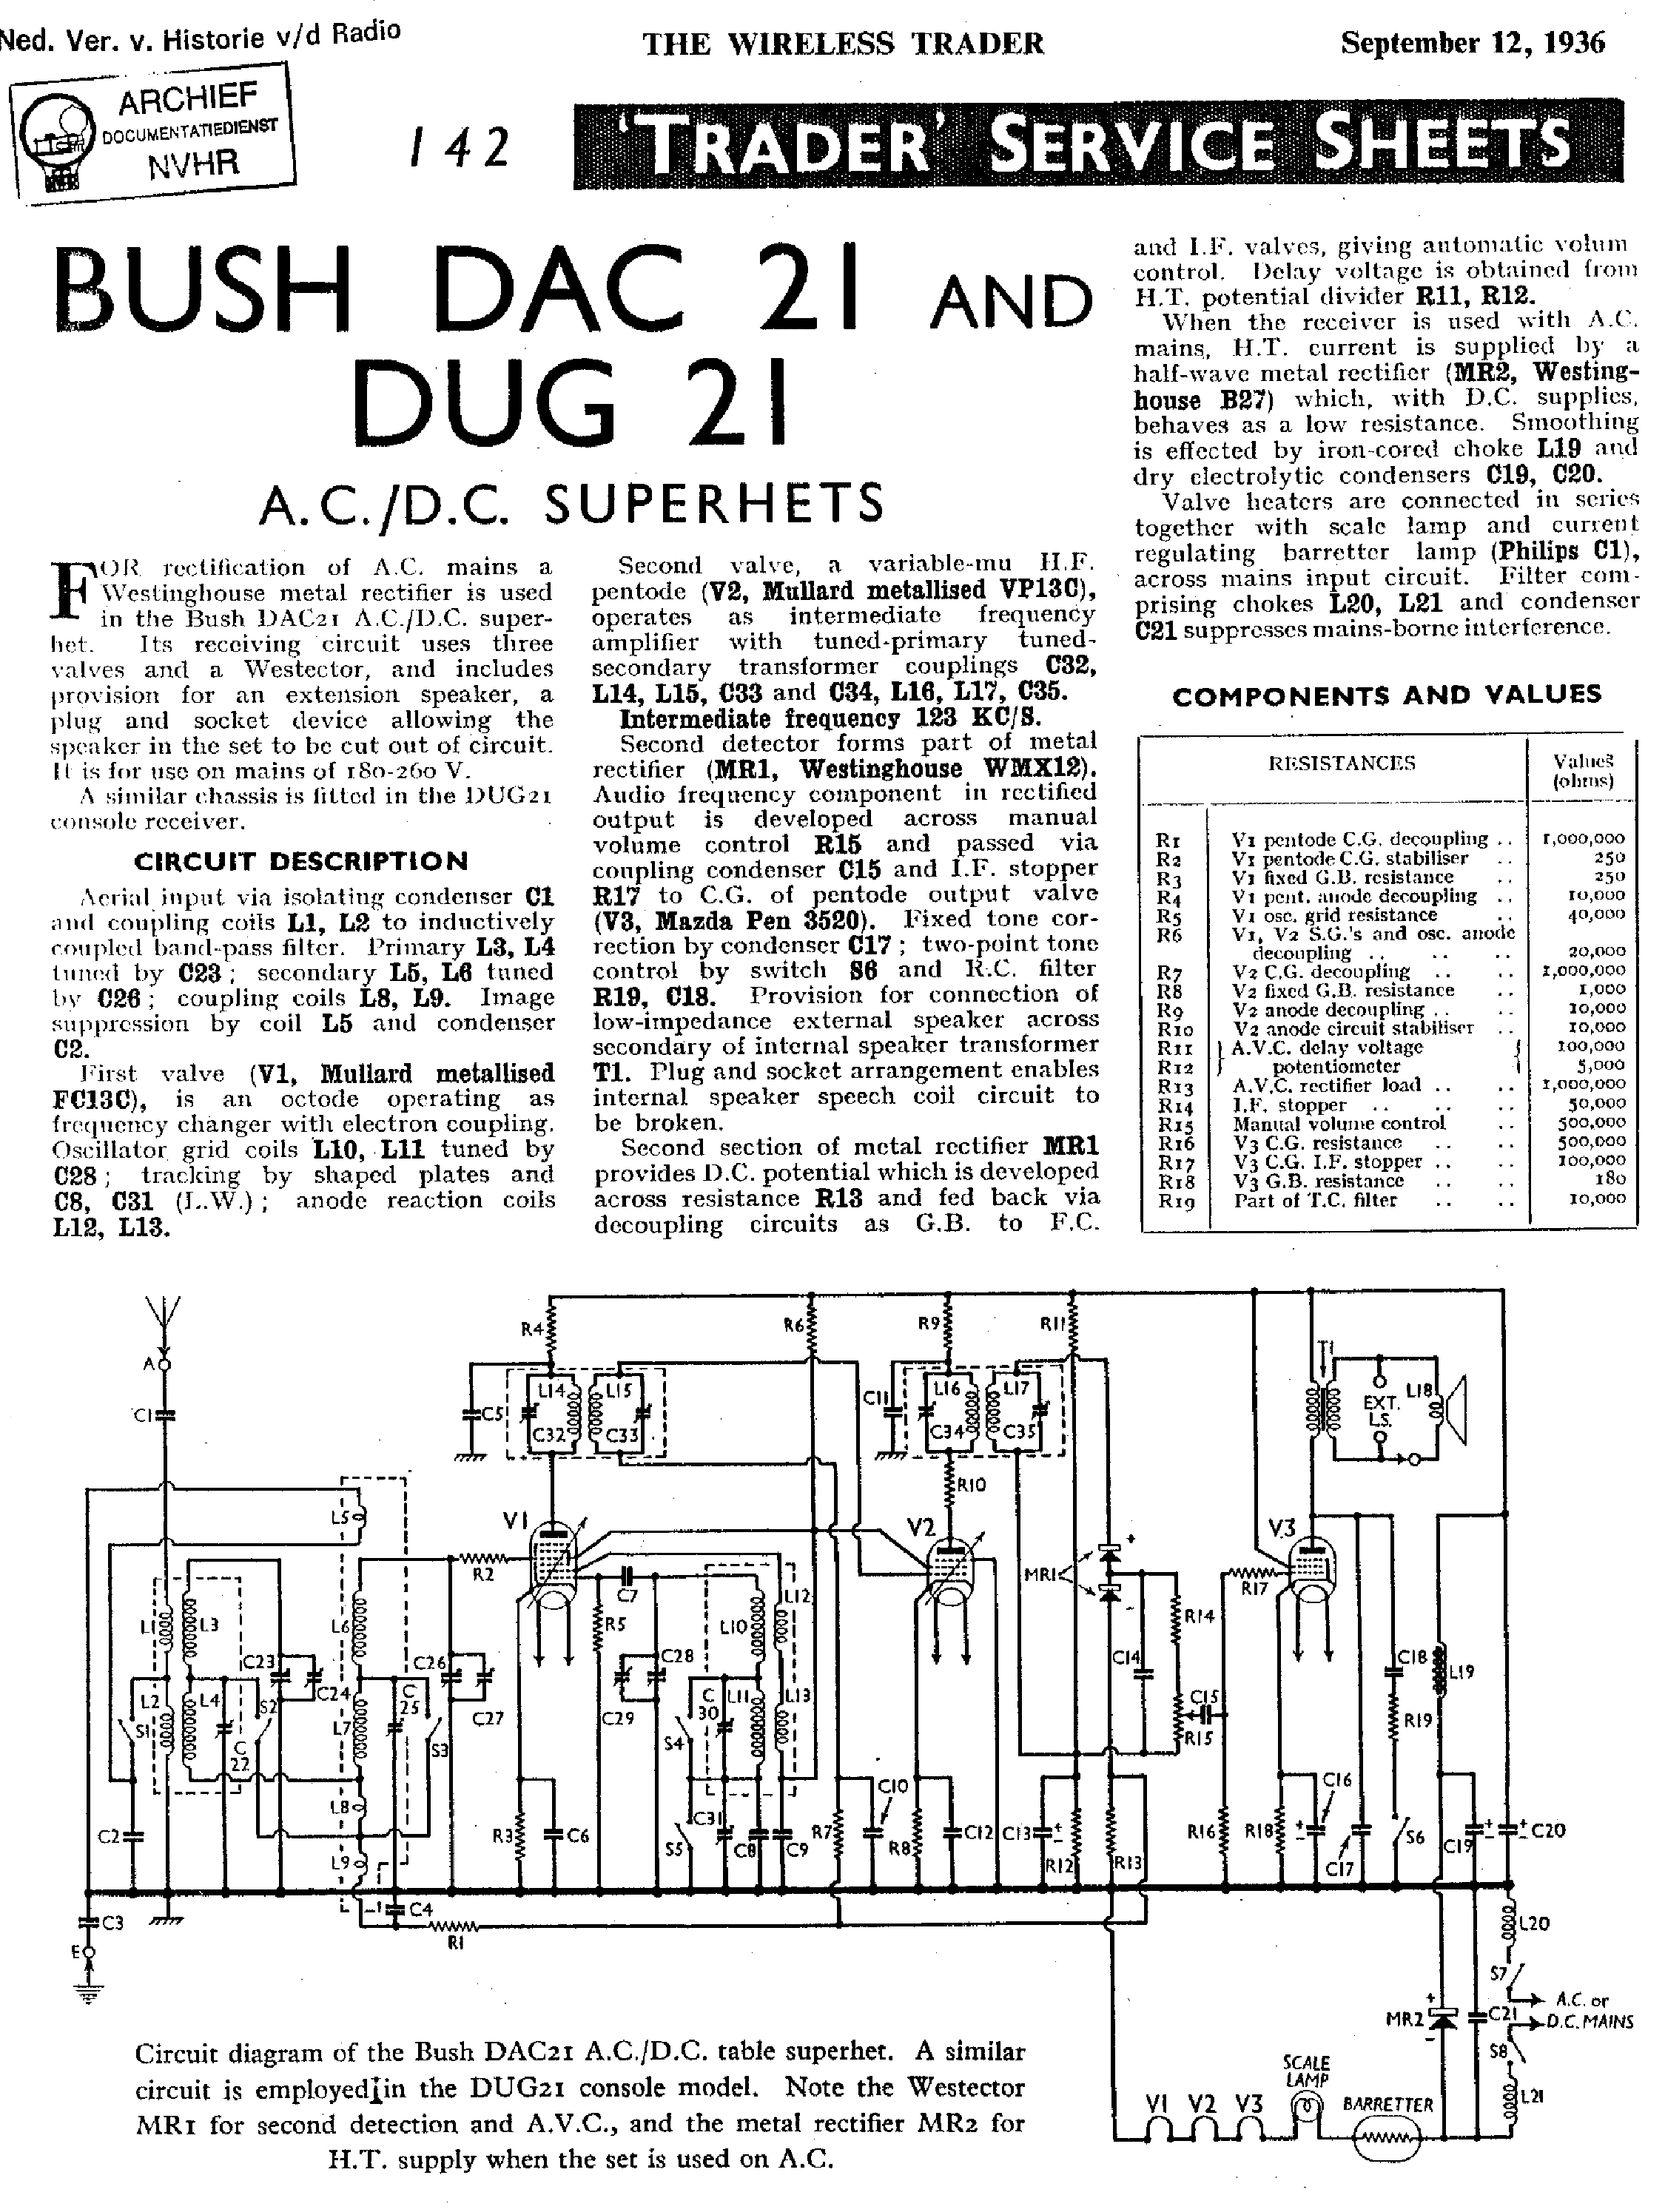 BUSH DAC43 DUG43 RG43 RADIO 1943 SM Service Manual